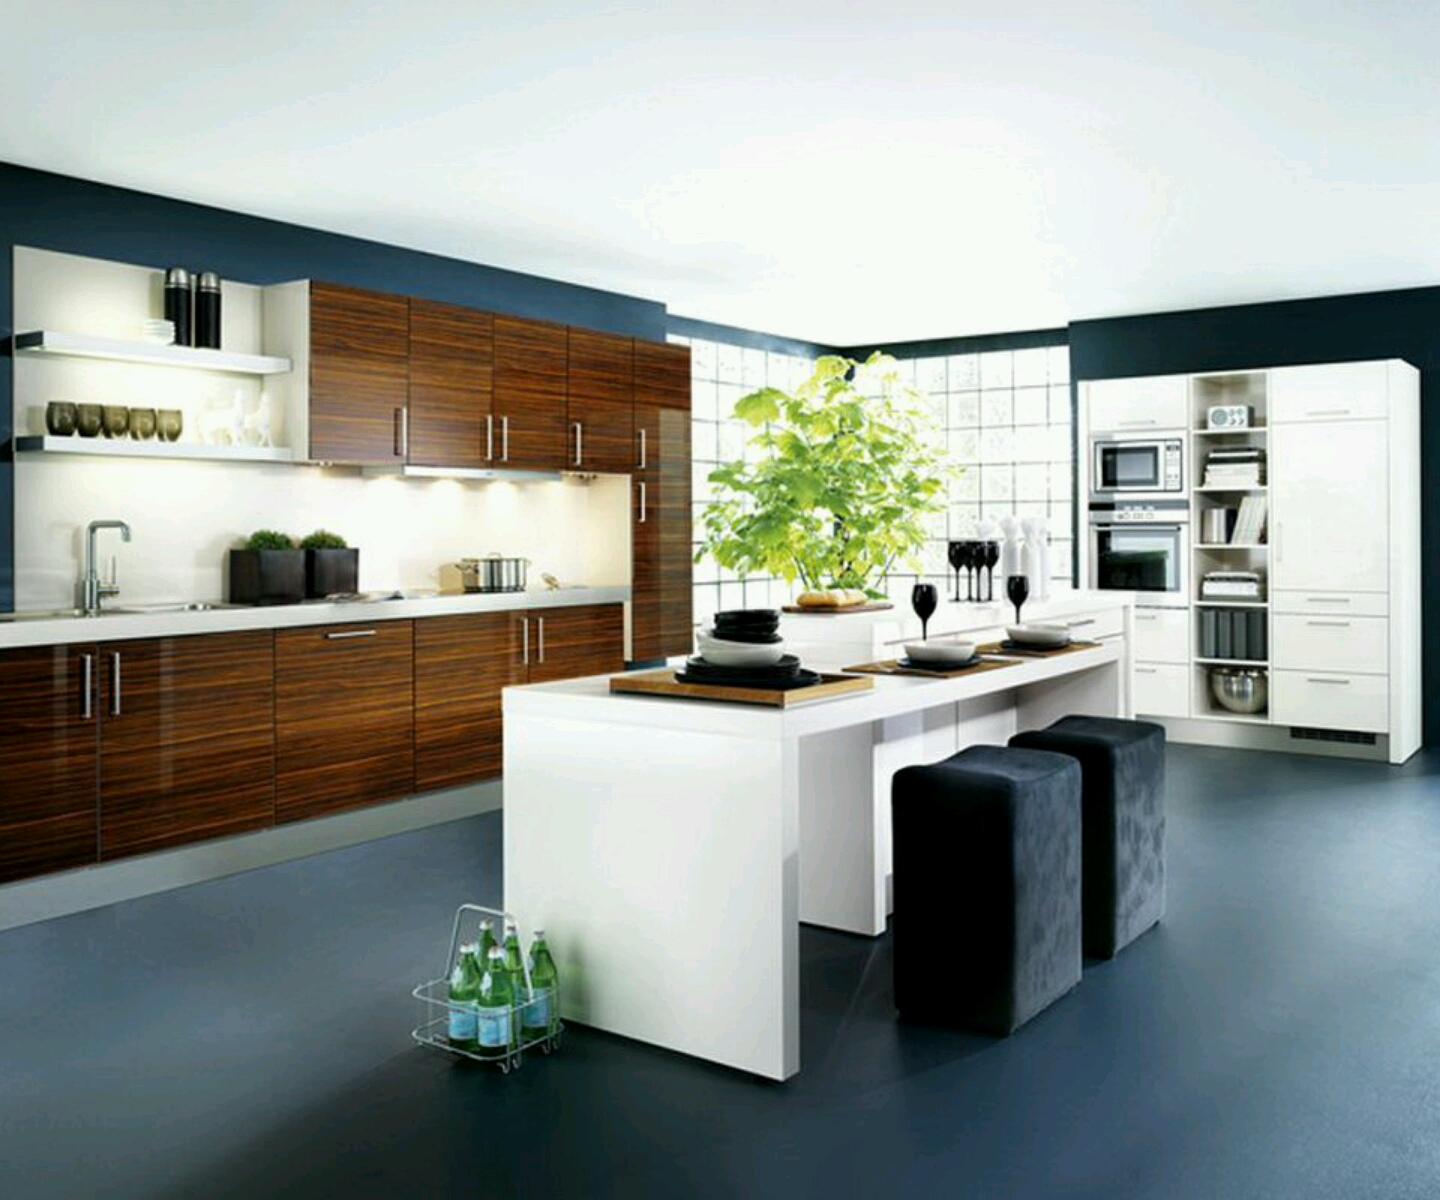 Latest Design For Kitchen: New Home Designs Latest.: Kitchen Cabinets Designs Modern